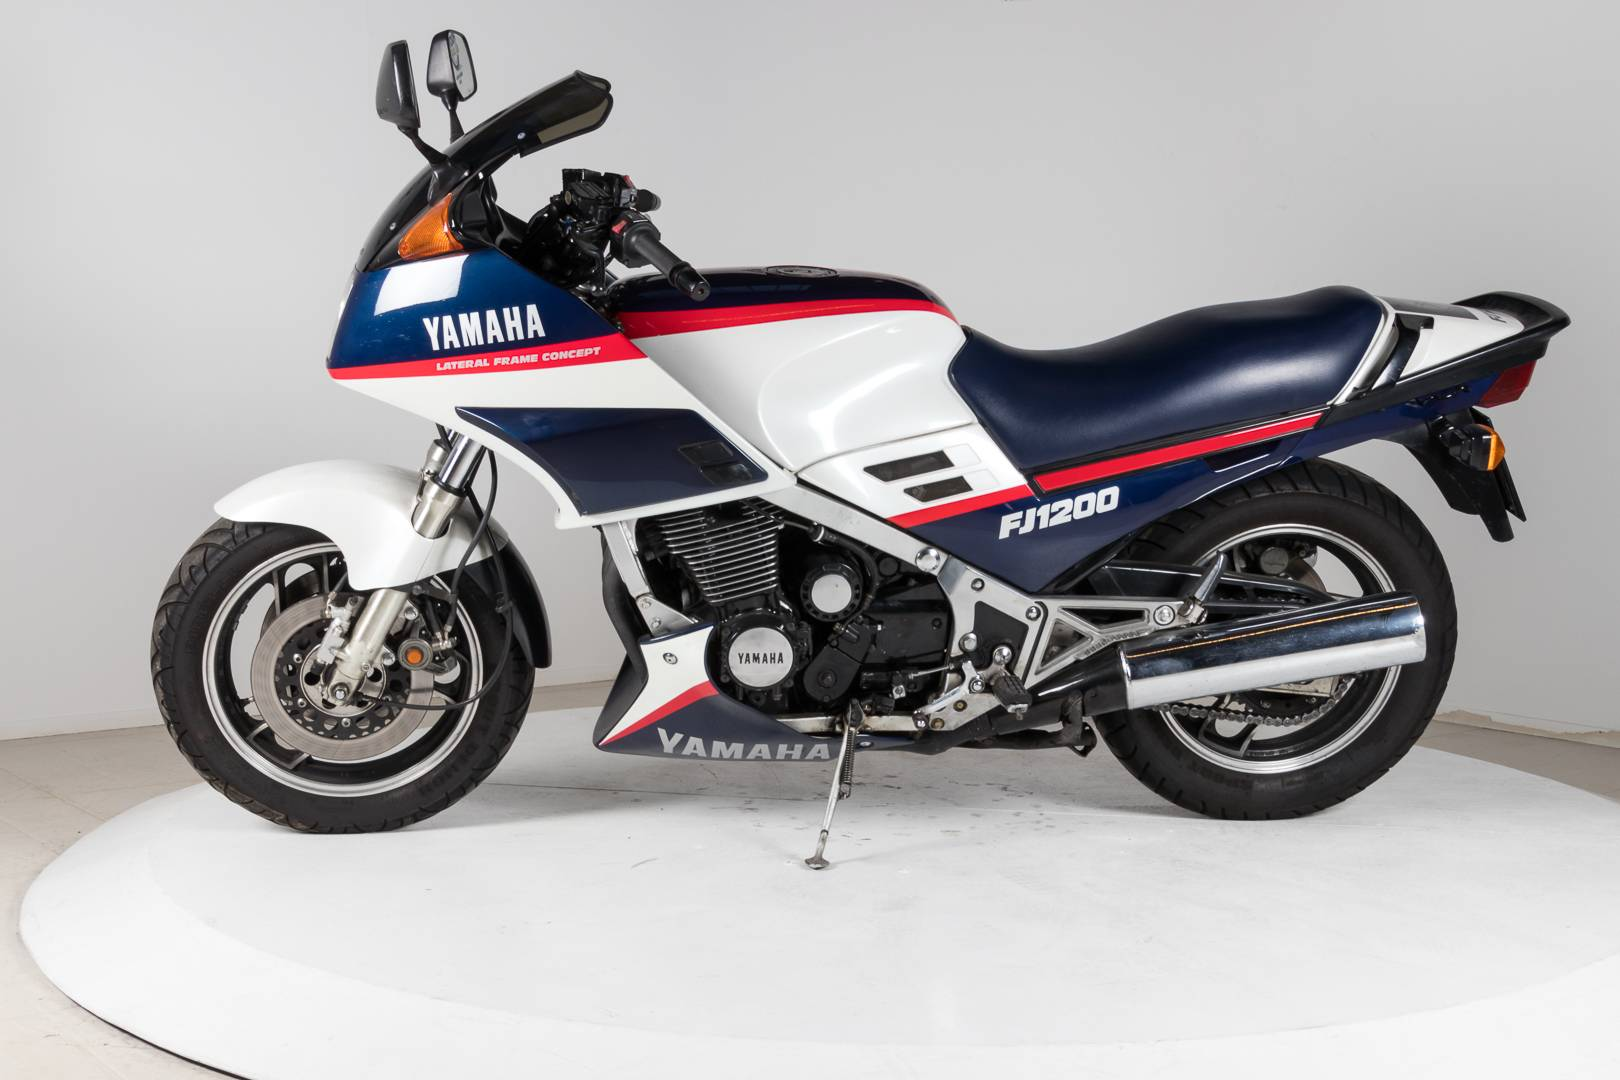 For Sale: Yamaha FJ 1200 (1986) offered for GBP 3,485